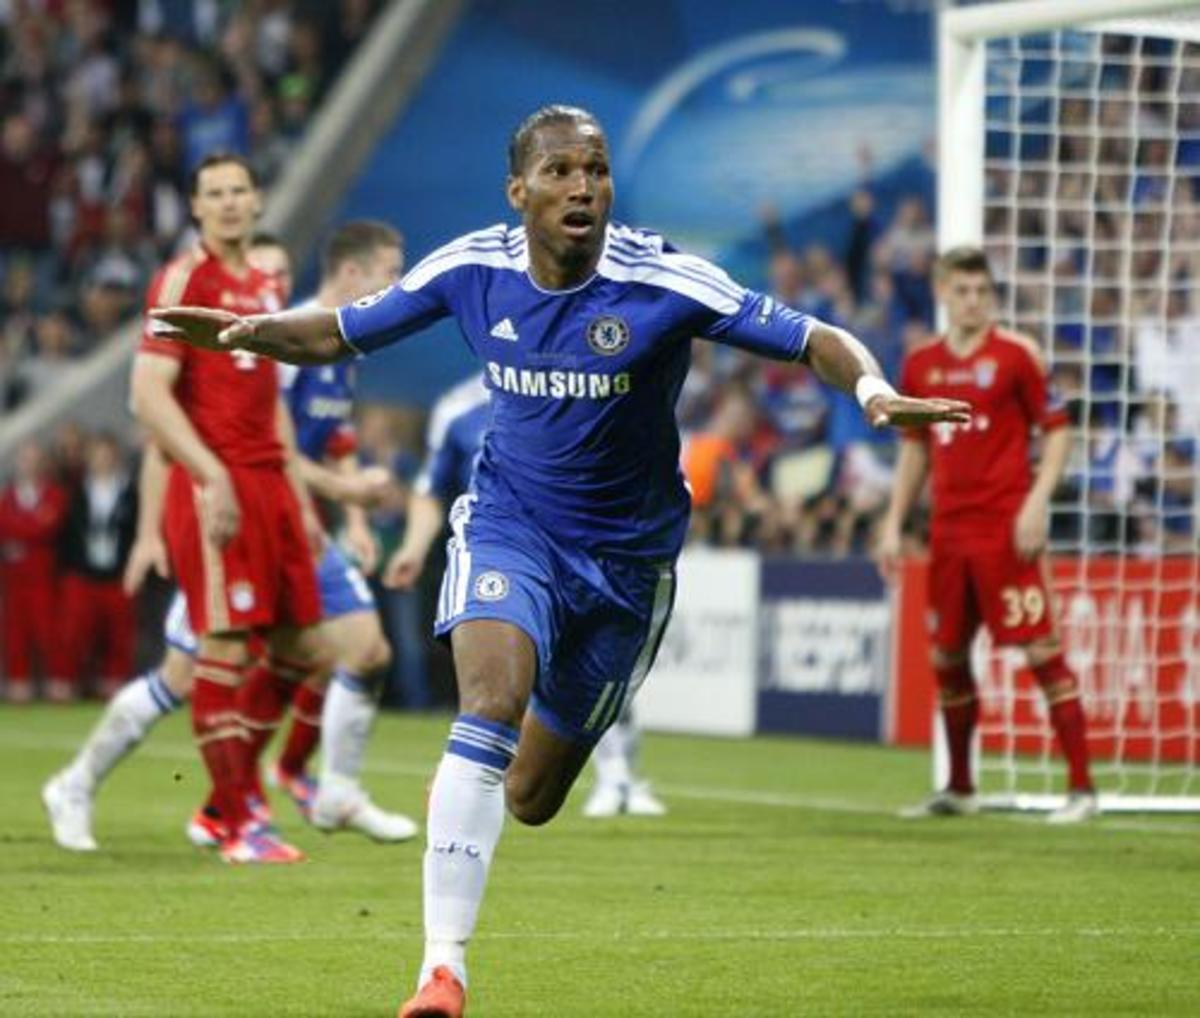 angleterre-didier-drogba-seul-joueur-africain-nomine-pour-le-hall-of-fame